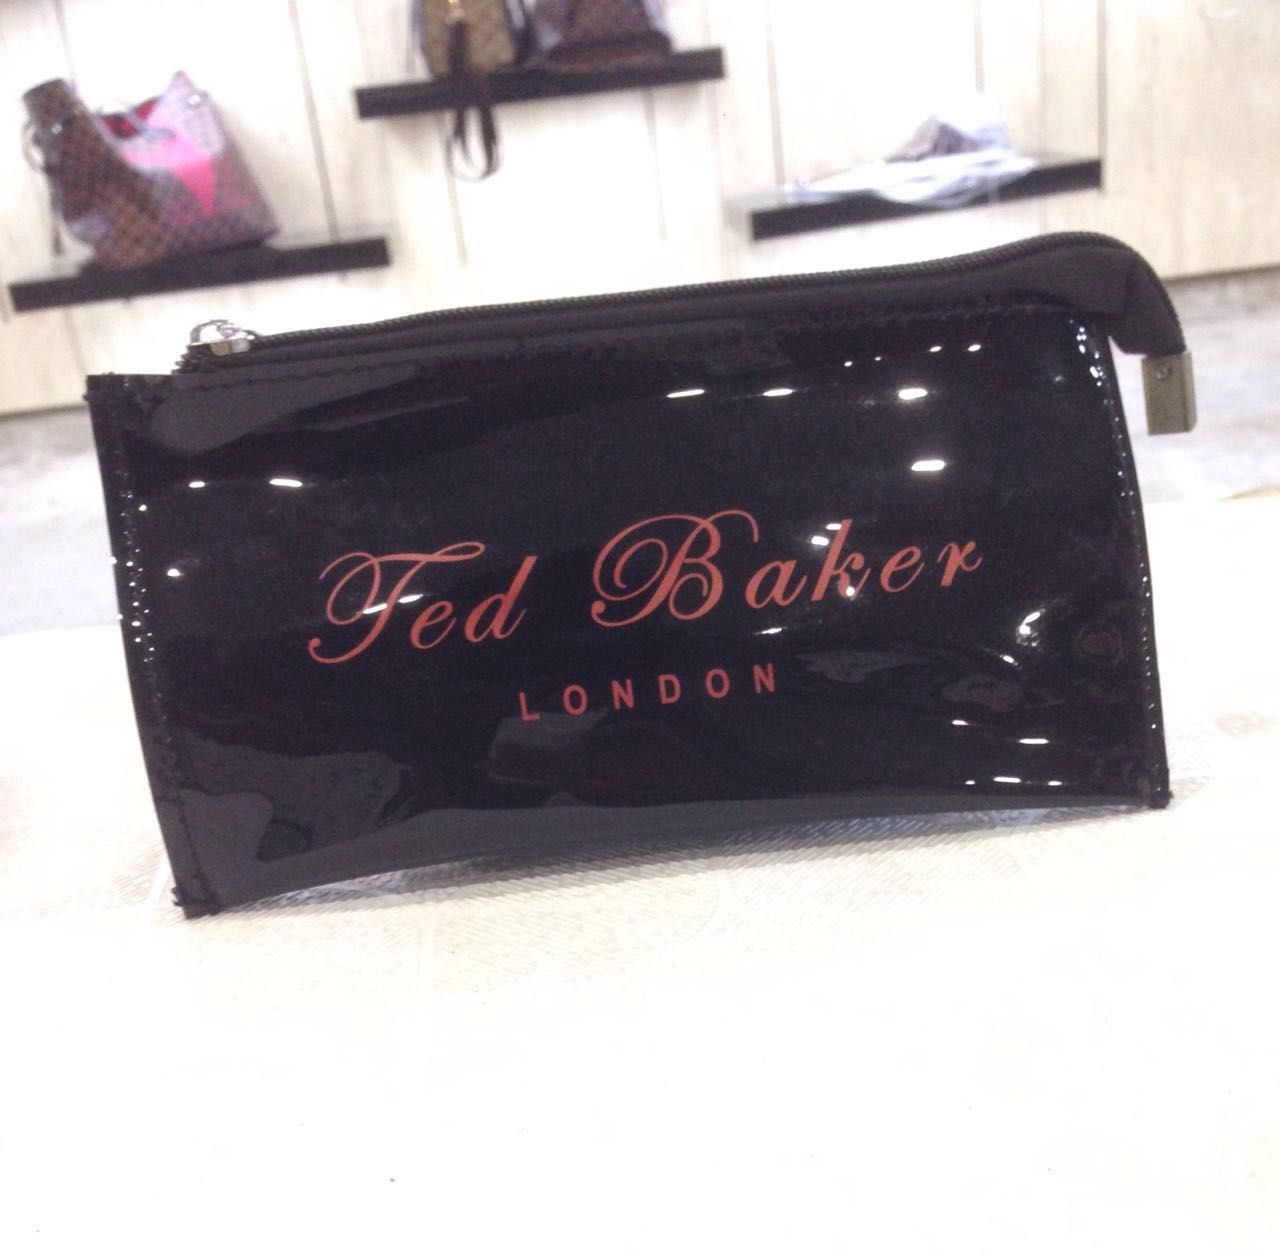 Bottega Venetta, Harrods, Ted Baker Pouches | Branded Products For Sale Call / Whatsapp @ +919560214267.